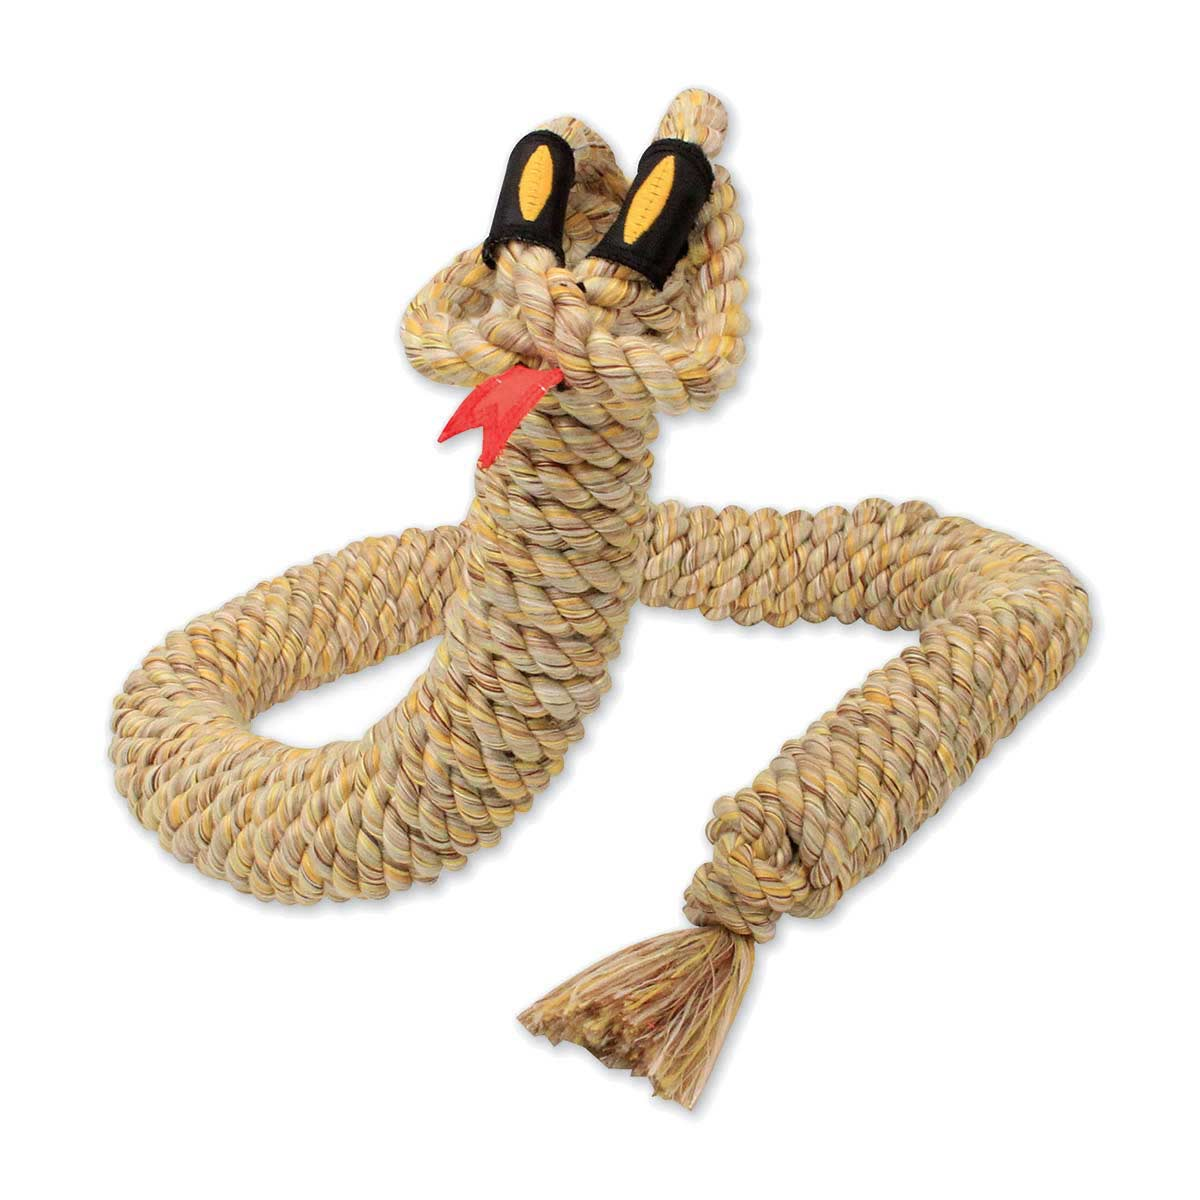 Mammoth Large 46 inch Snakebiter Rope Toy for Dogs